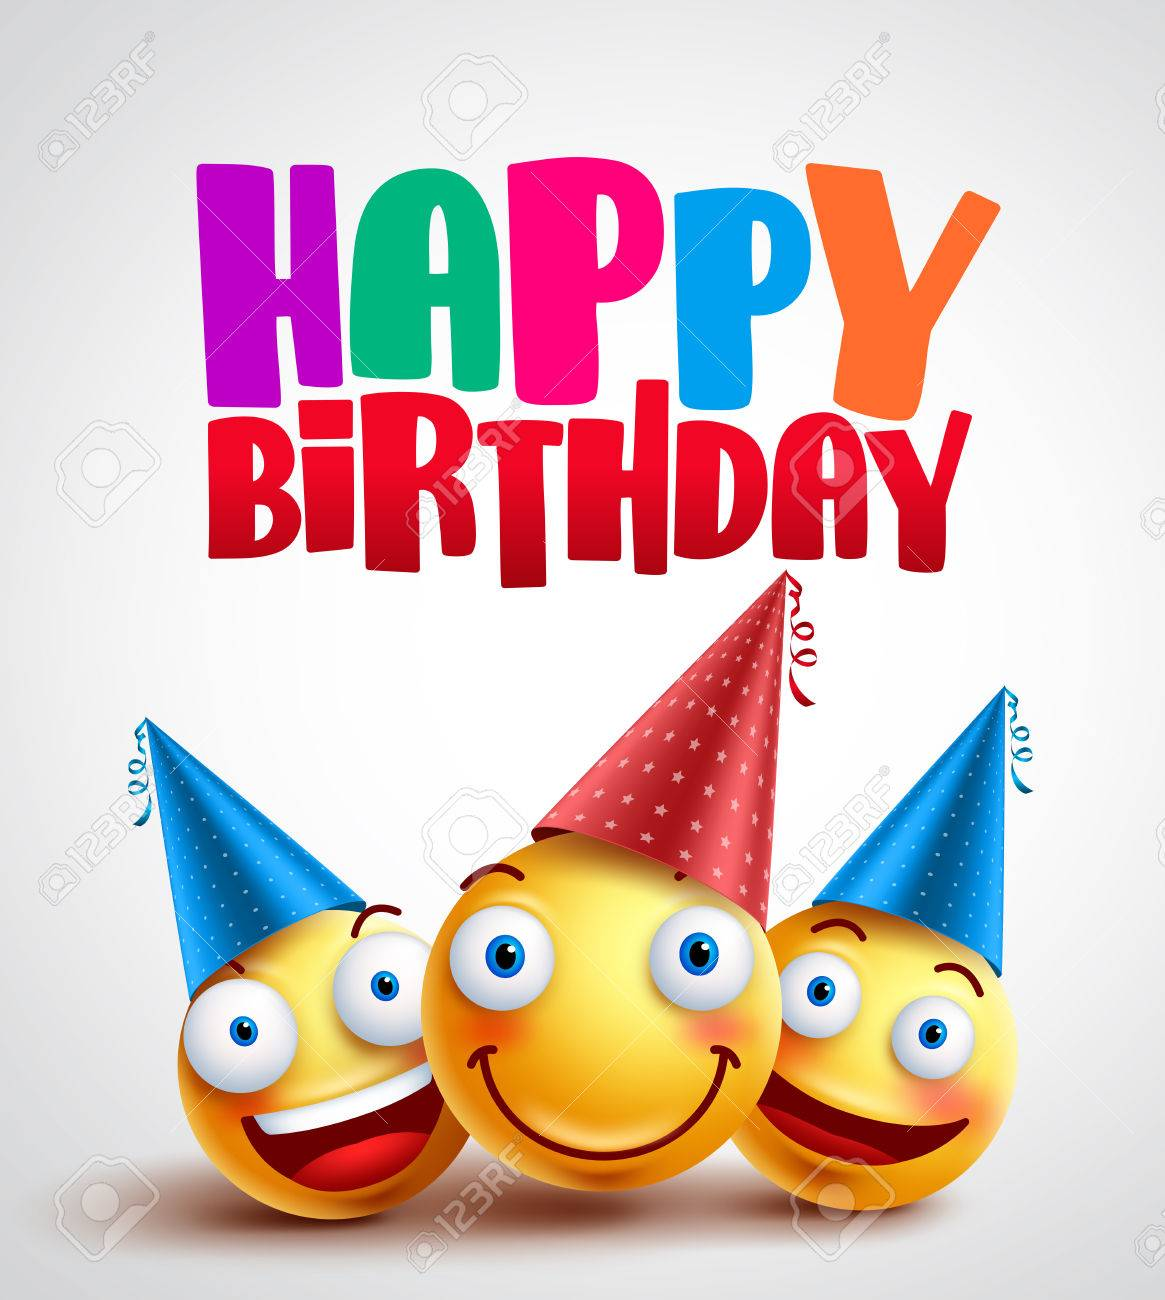 Happy Birthday Smileys Celebrant With Happy Friends Funny Vector Royalty Free Cliparts Vectors And Stock Illustration Image 77698422